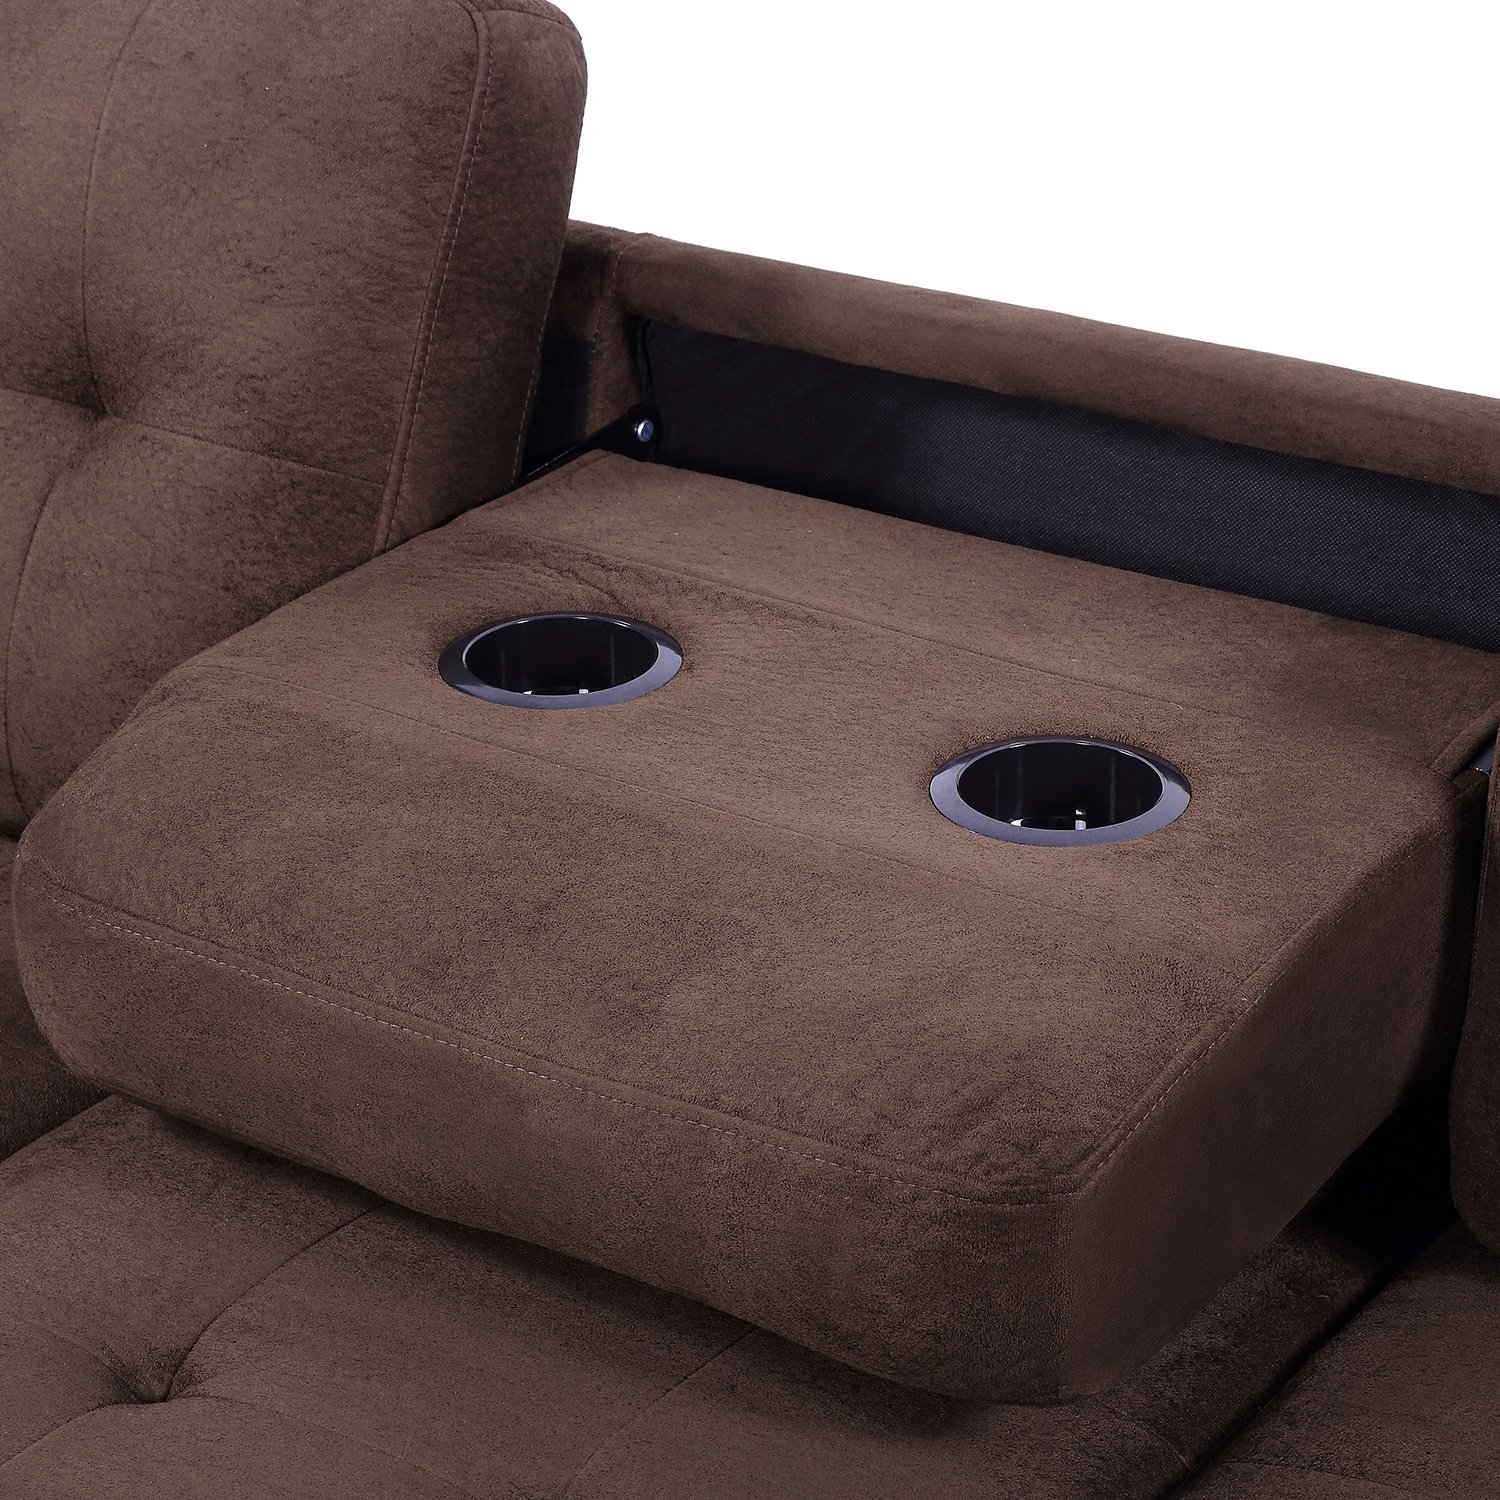 Harper & Bright Designs 3 Piece Sectional Sofa Microfiber with Reversible Chaise Lounge Storage Ottoman and Cup Holders (Brown) by Harper & Bright Designs (Image #6)